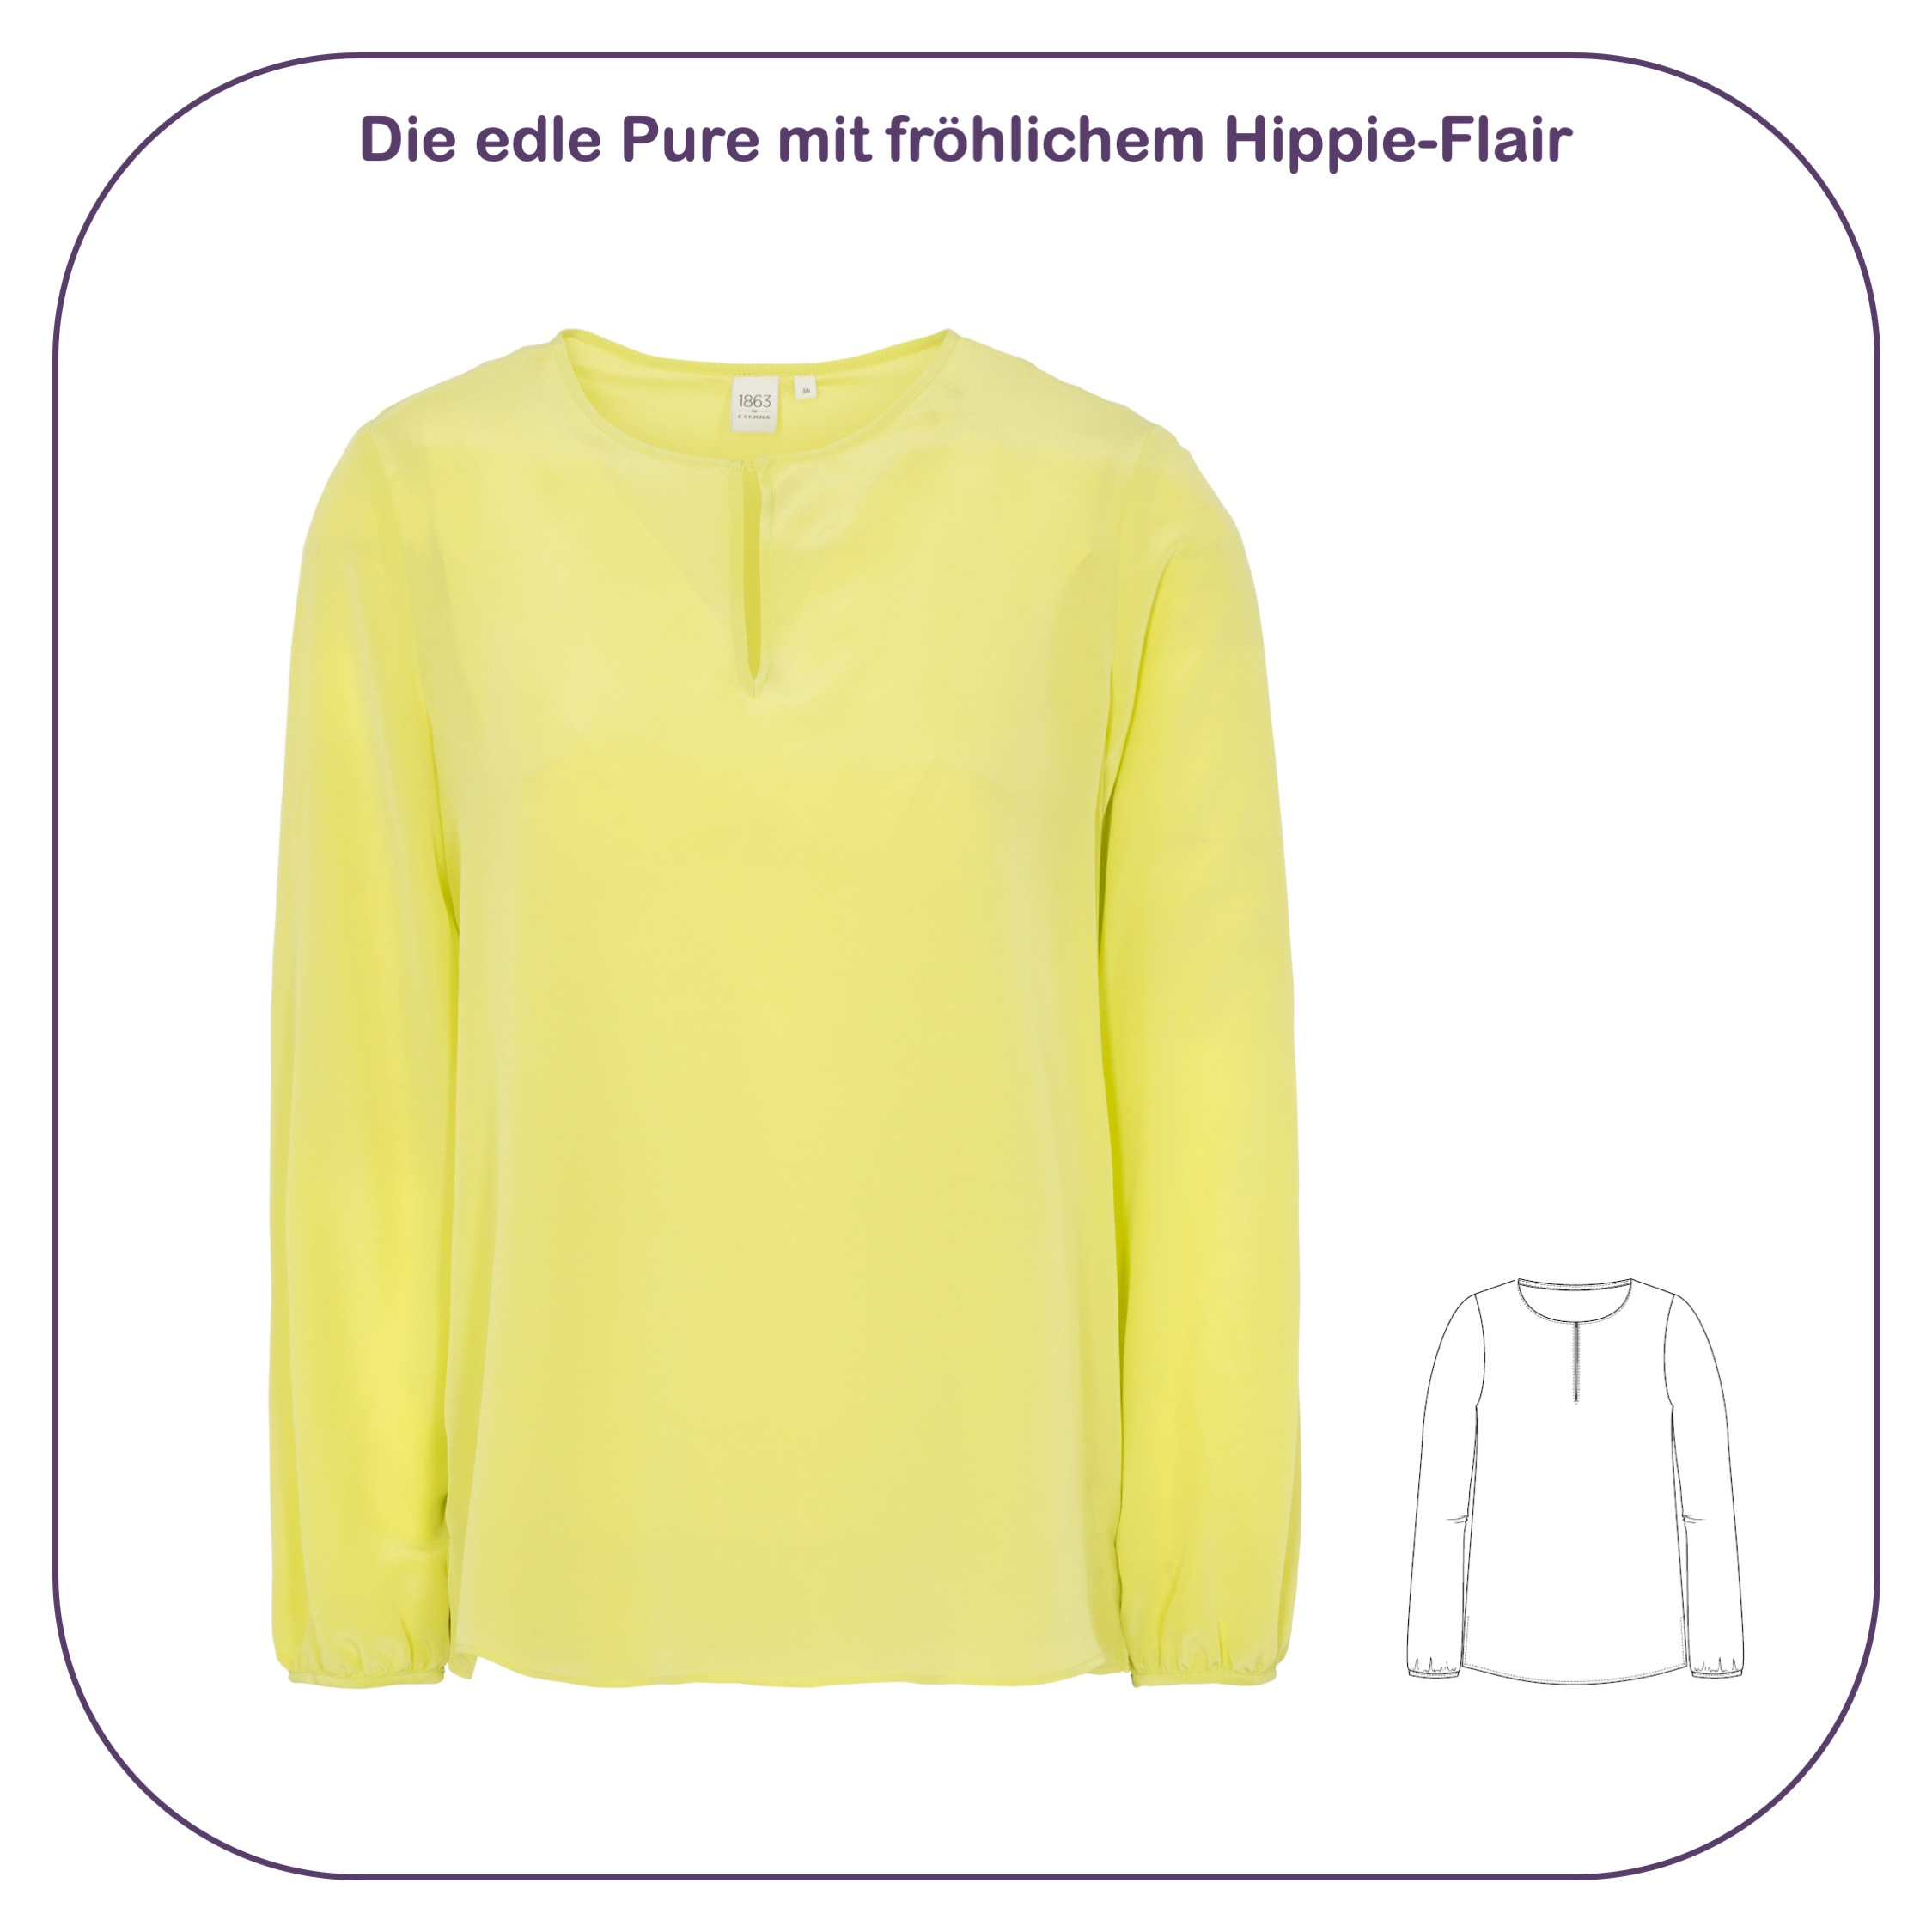 Pure, edle Seidenbluse in Gelb mit Hippie-Flair